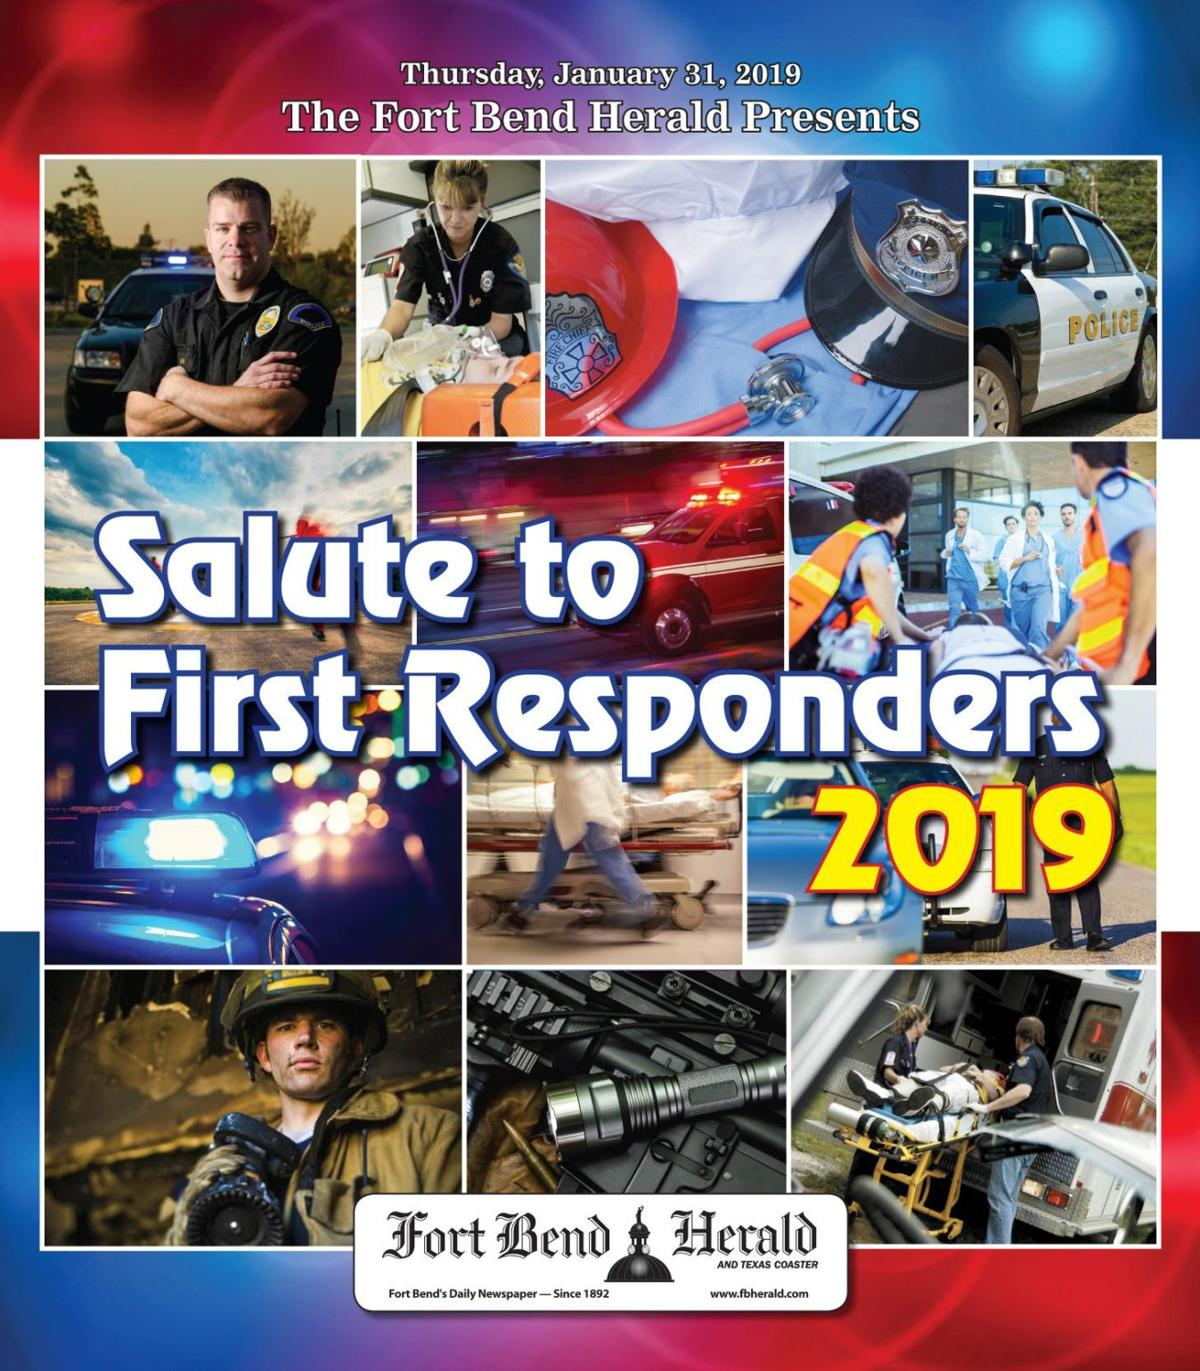 The Fort Bend Herald's 2019 Salute to First Responders